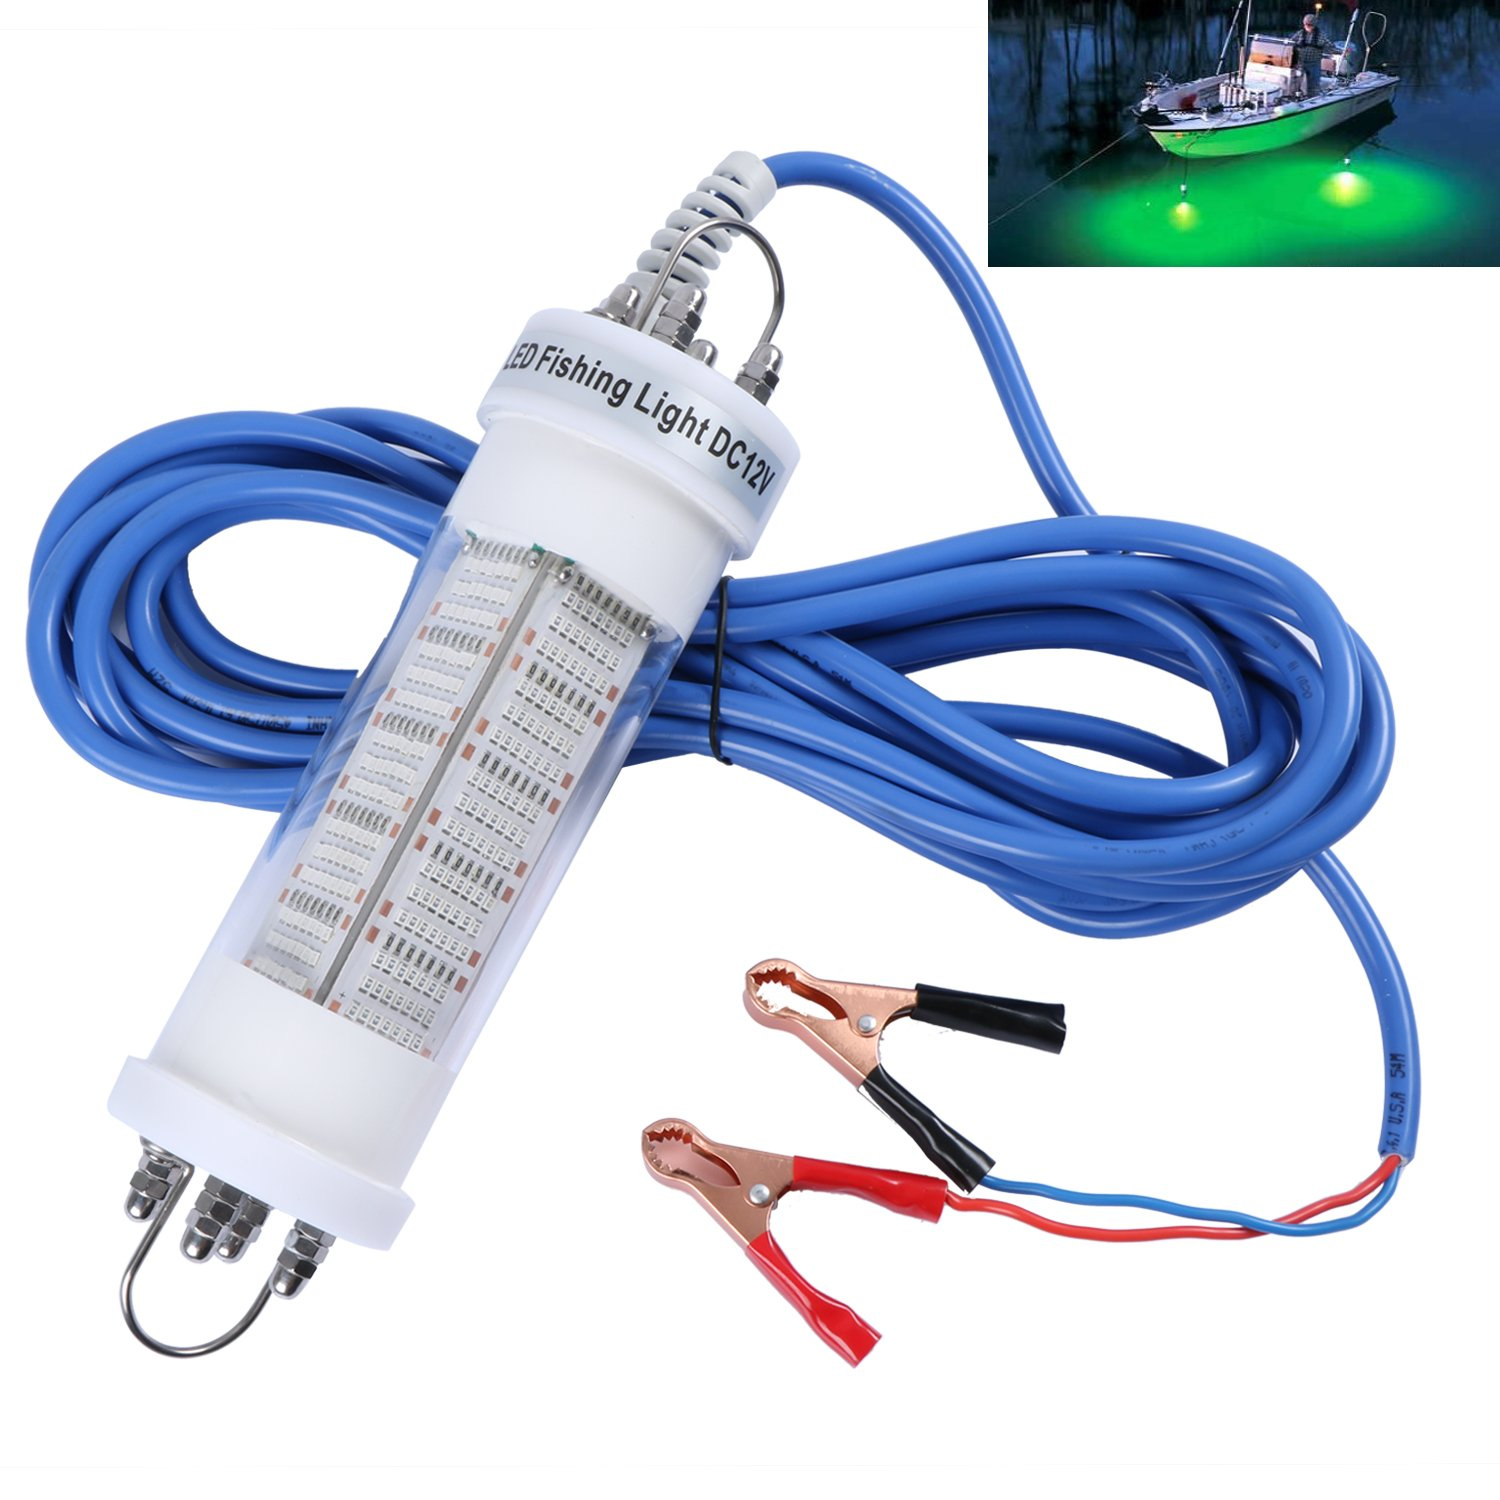 Goture 12V IP68 High-Power LED Fully Submersible Night Fishing Light Deep Drop Underwater Lure Bait Fish Finder Lamp with 5.49 Cable for Krill, Phytoplankton, Squid - Blue